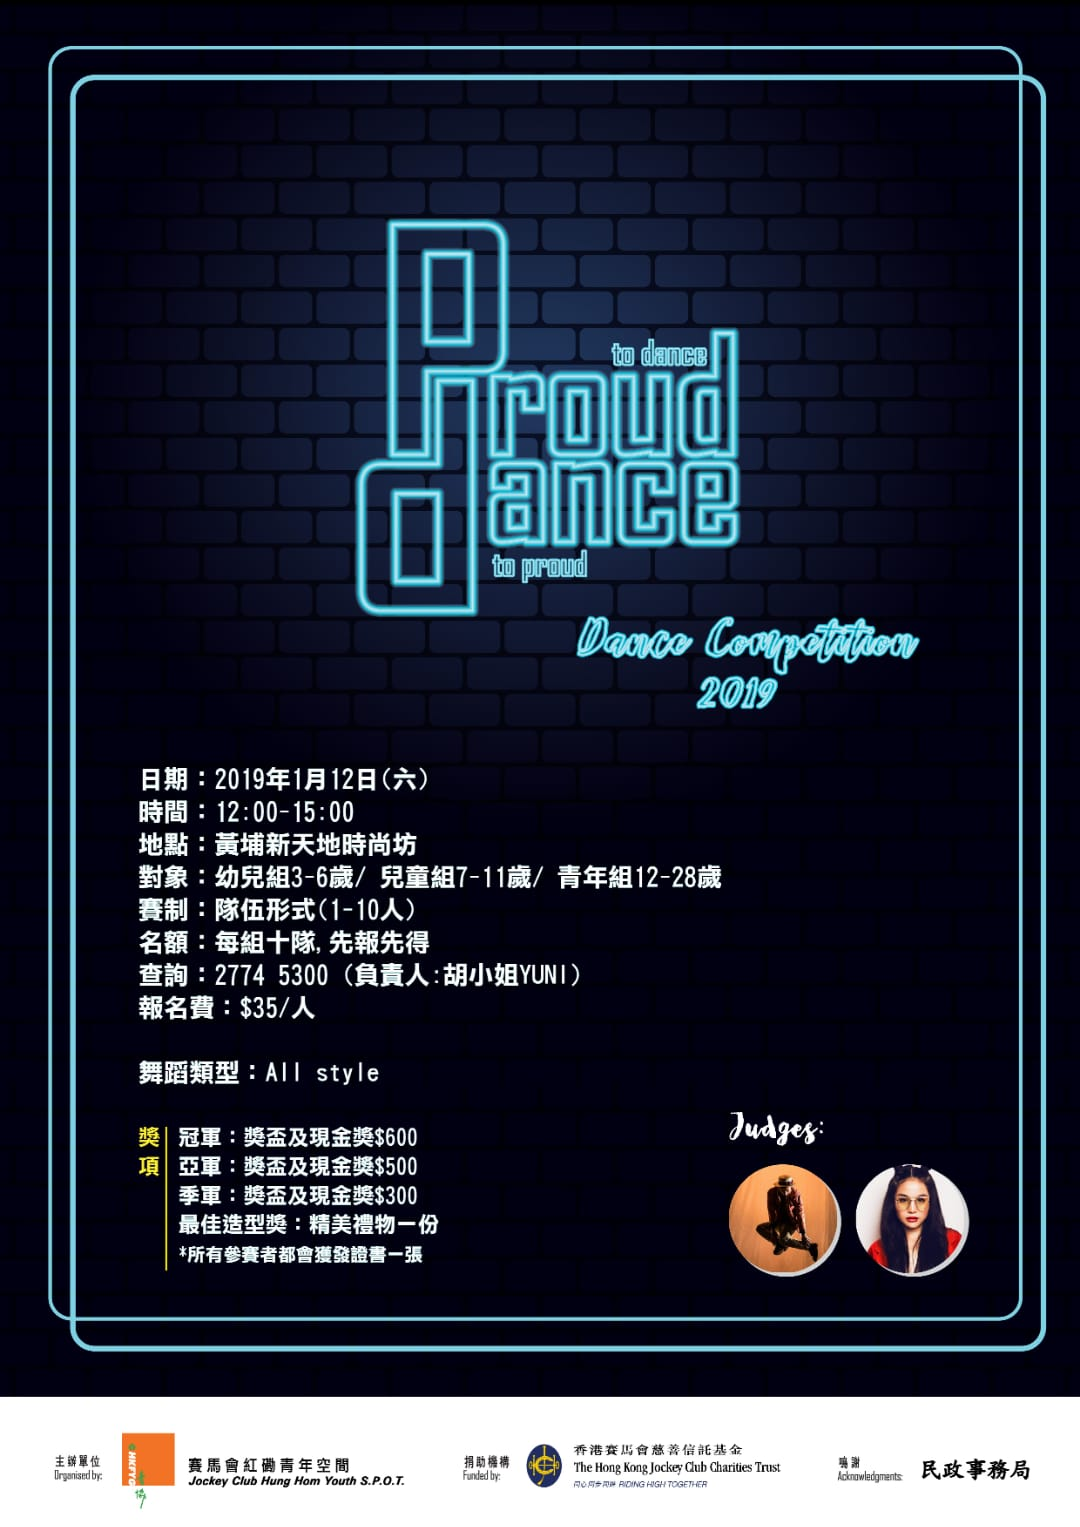 Proudance Dance Competition 2019